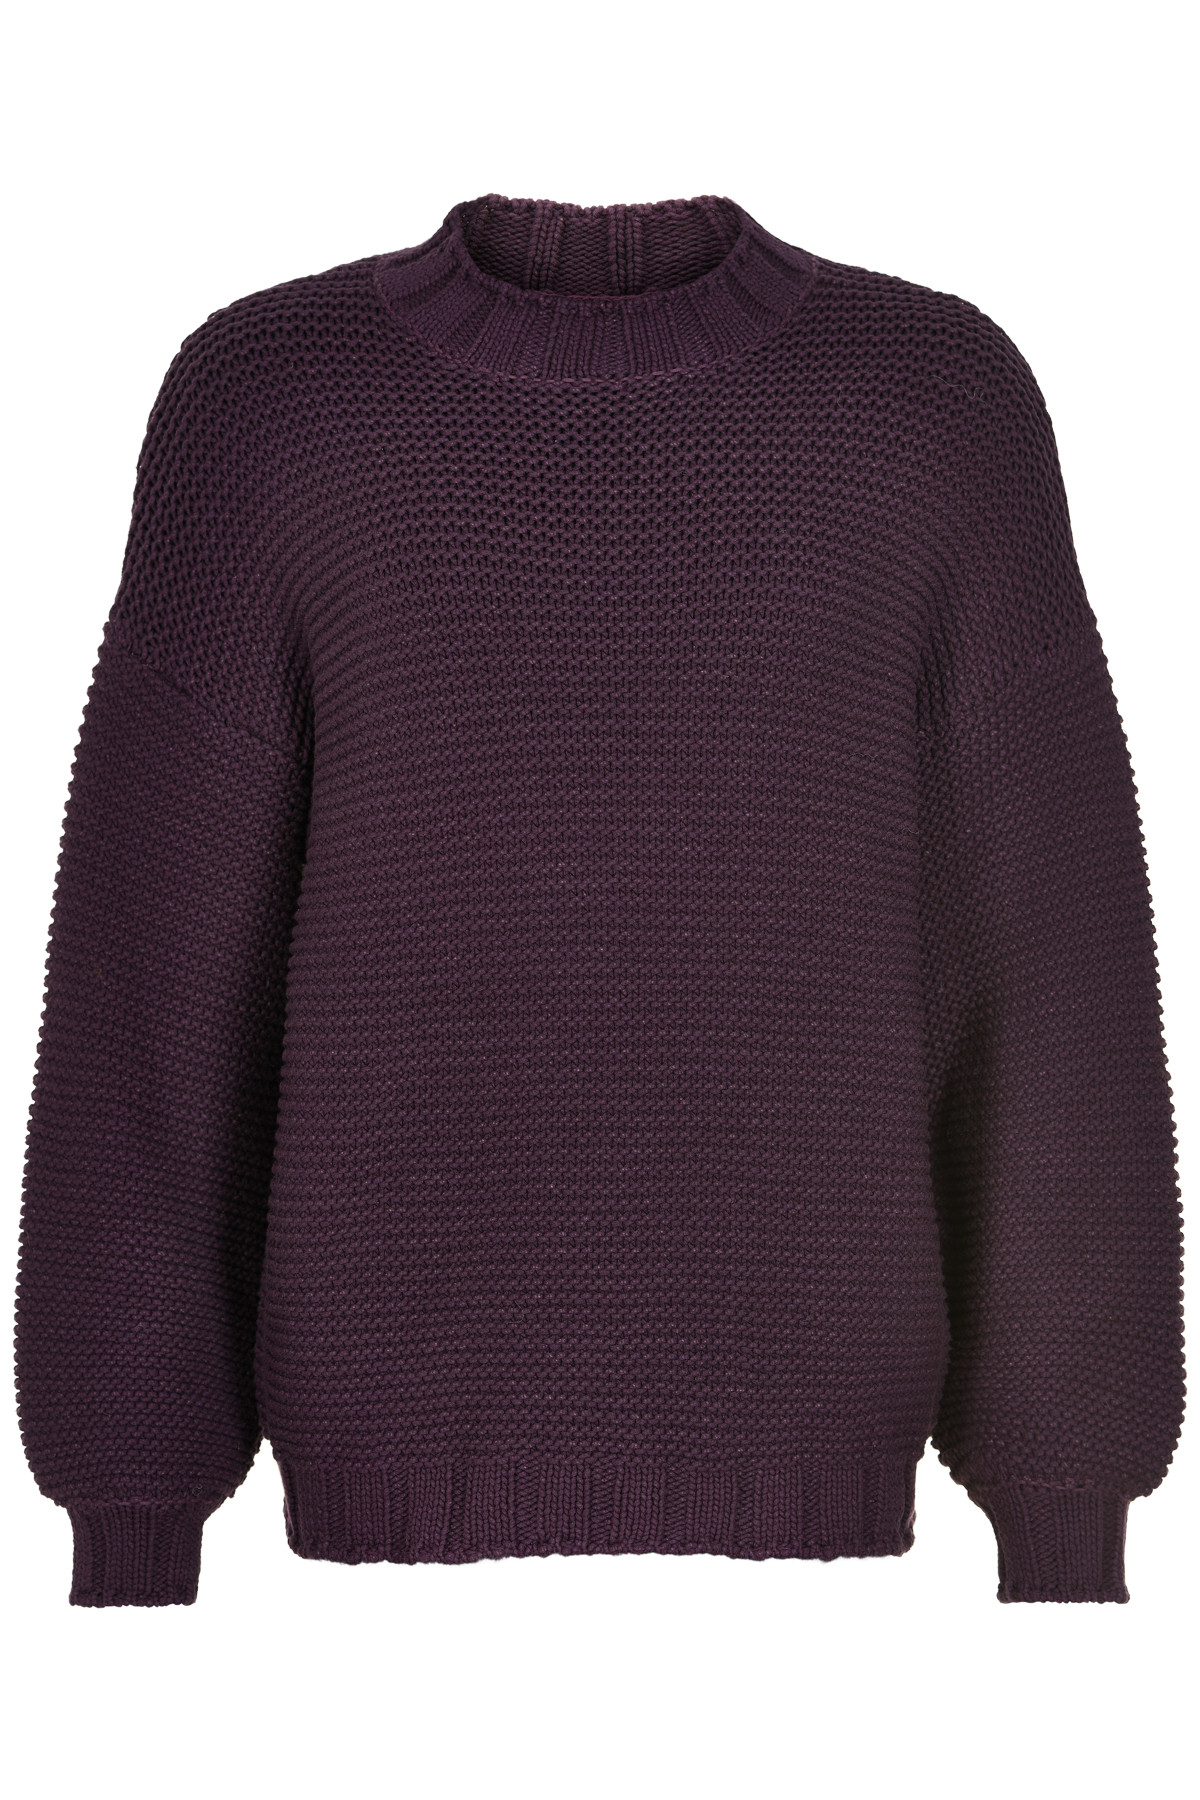 Image of   AND LESS NEW RAIMONDO PULLOVER 5419208 P (Plum Perfect, M)